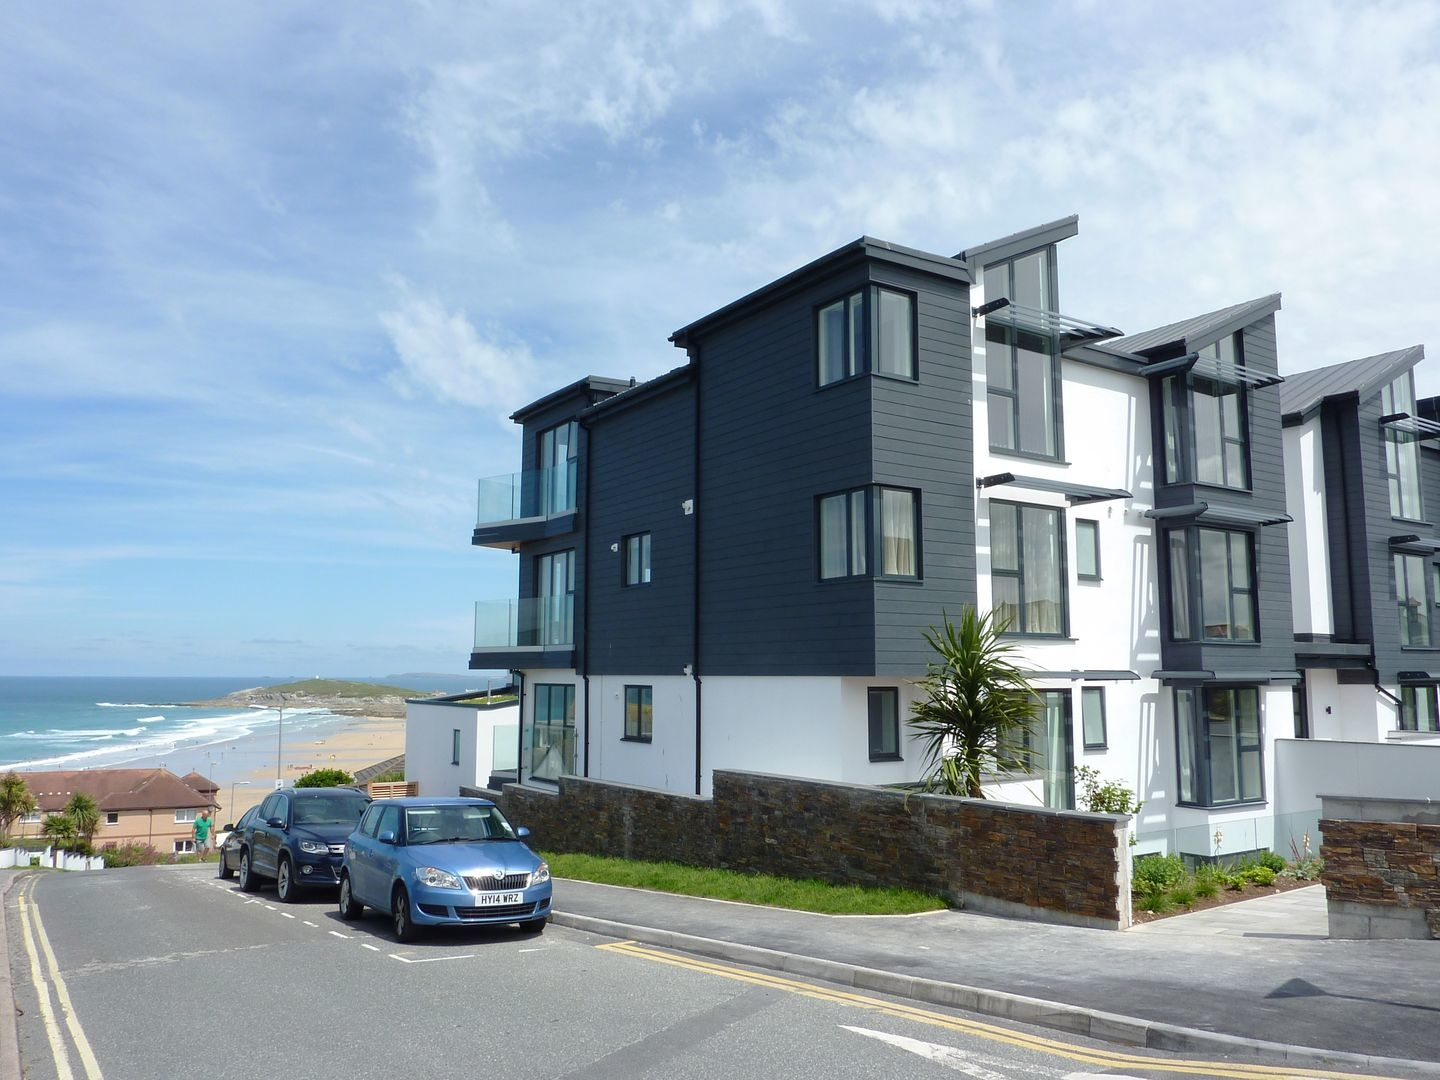 Flat 8 Seascape holiday rental